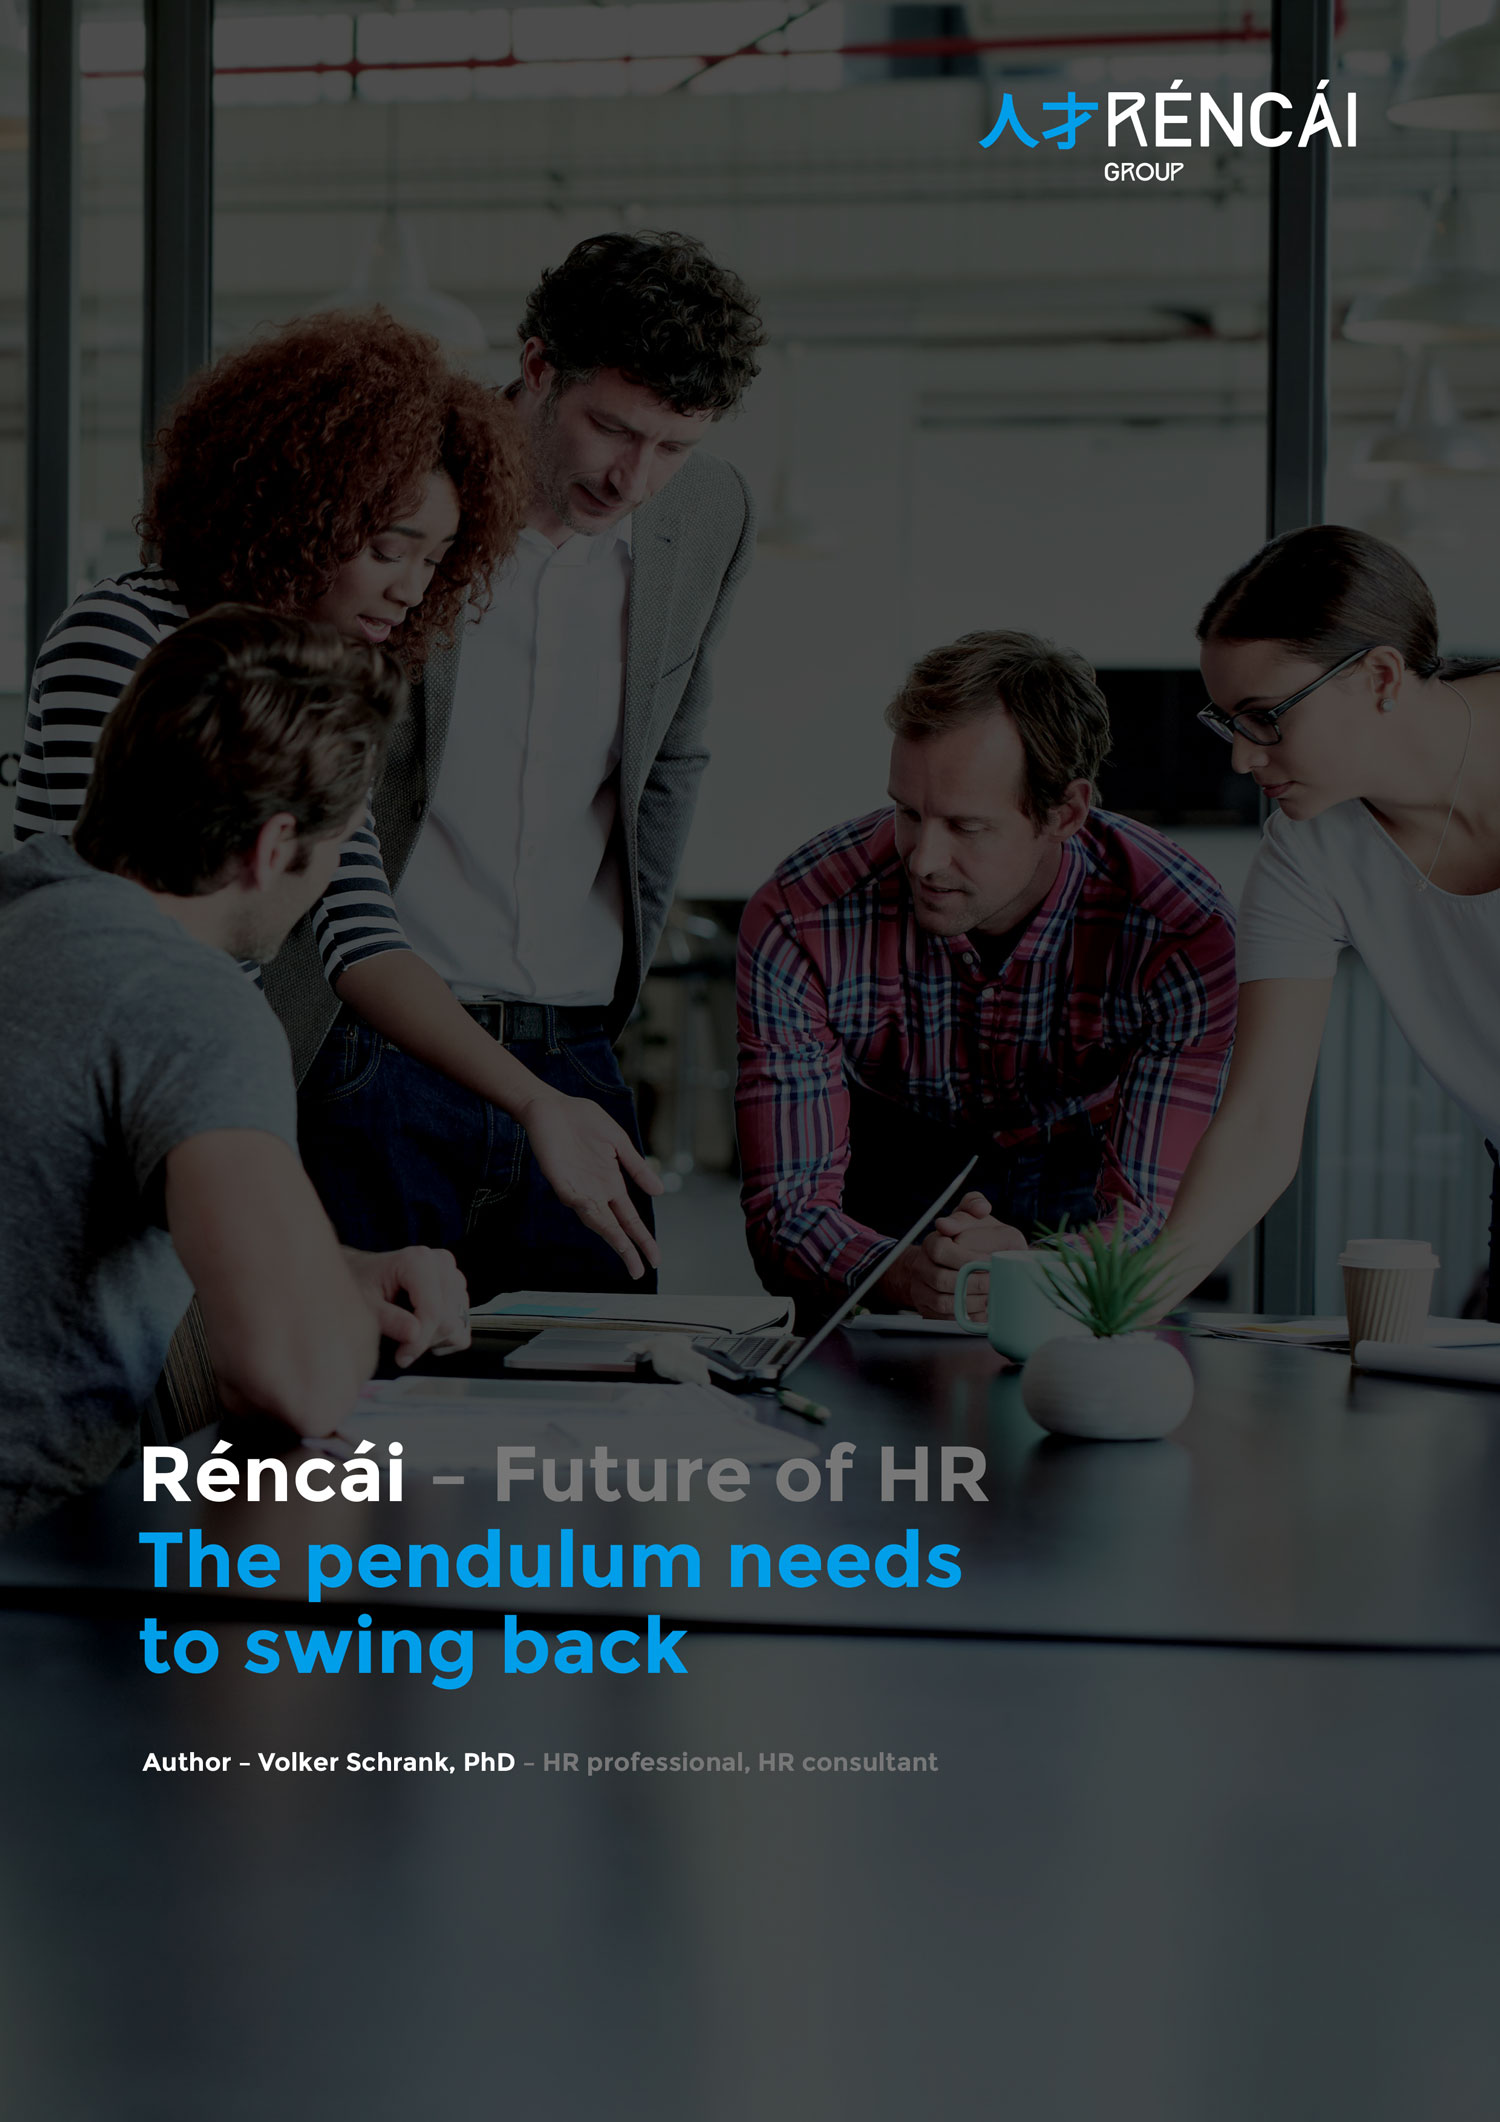 Rencai paper - future of HR